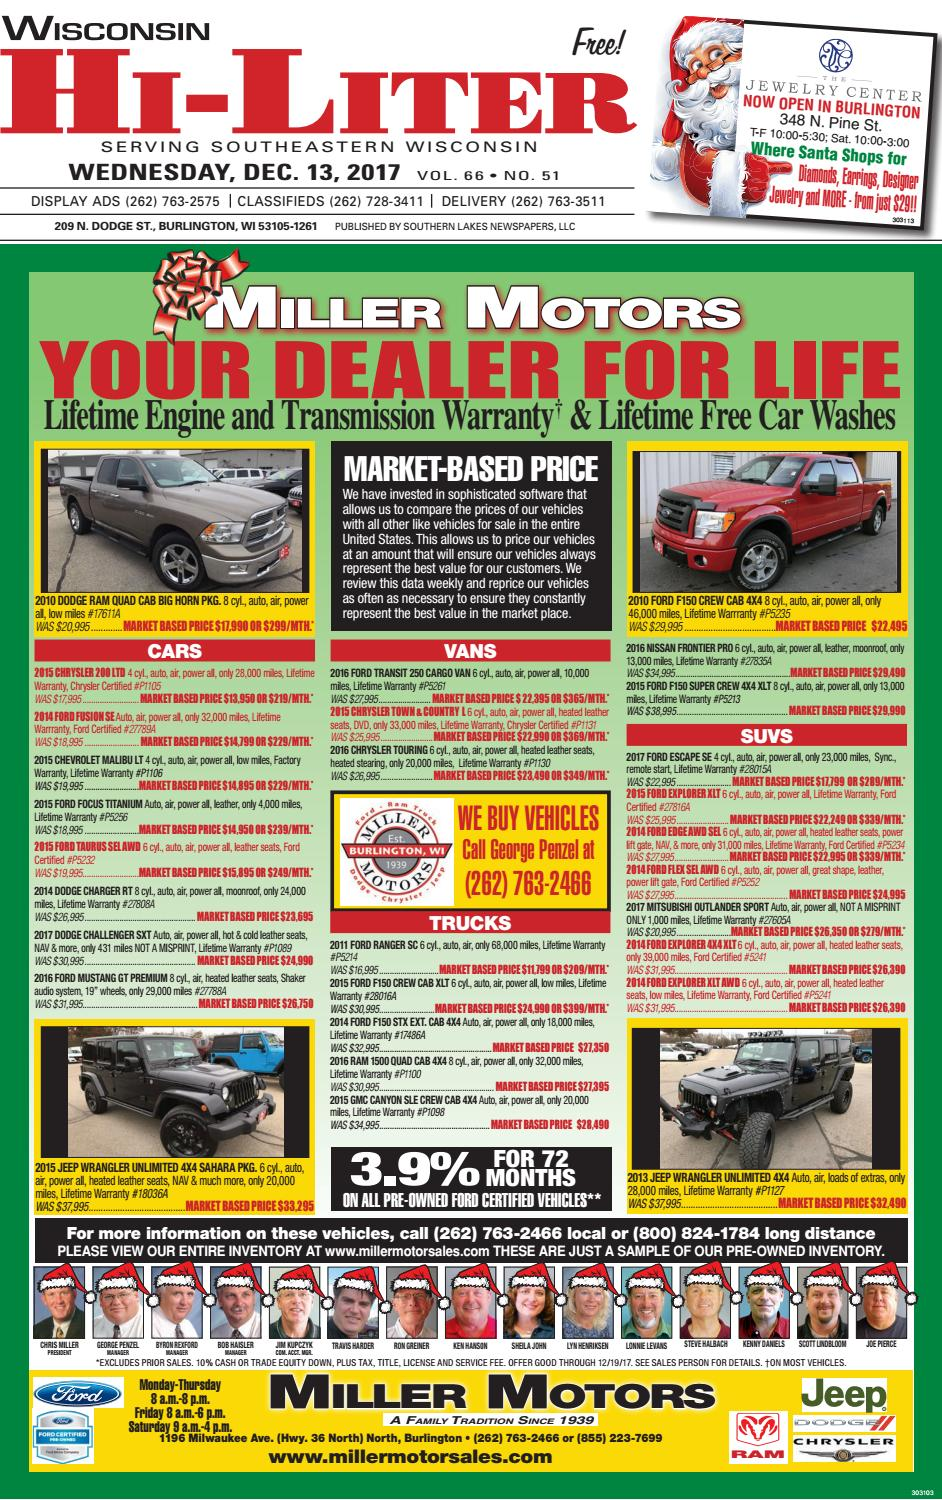 Miller Motors Burlington Wisconsin >> Wihi 12 13 17 By Southern Lakes Newspapers Rock Valley Publishing